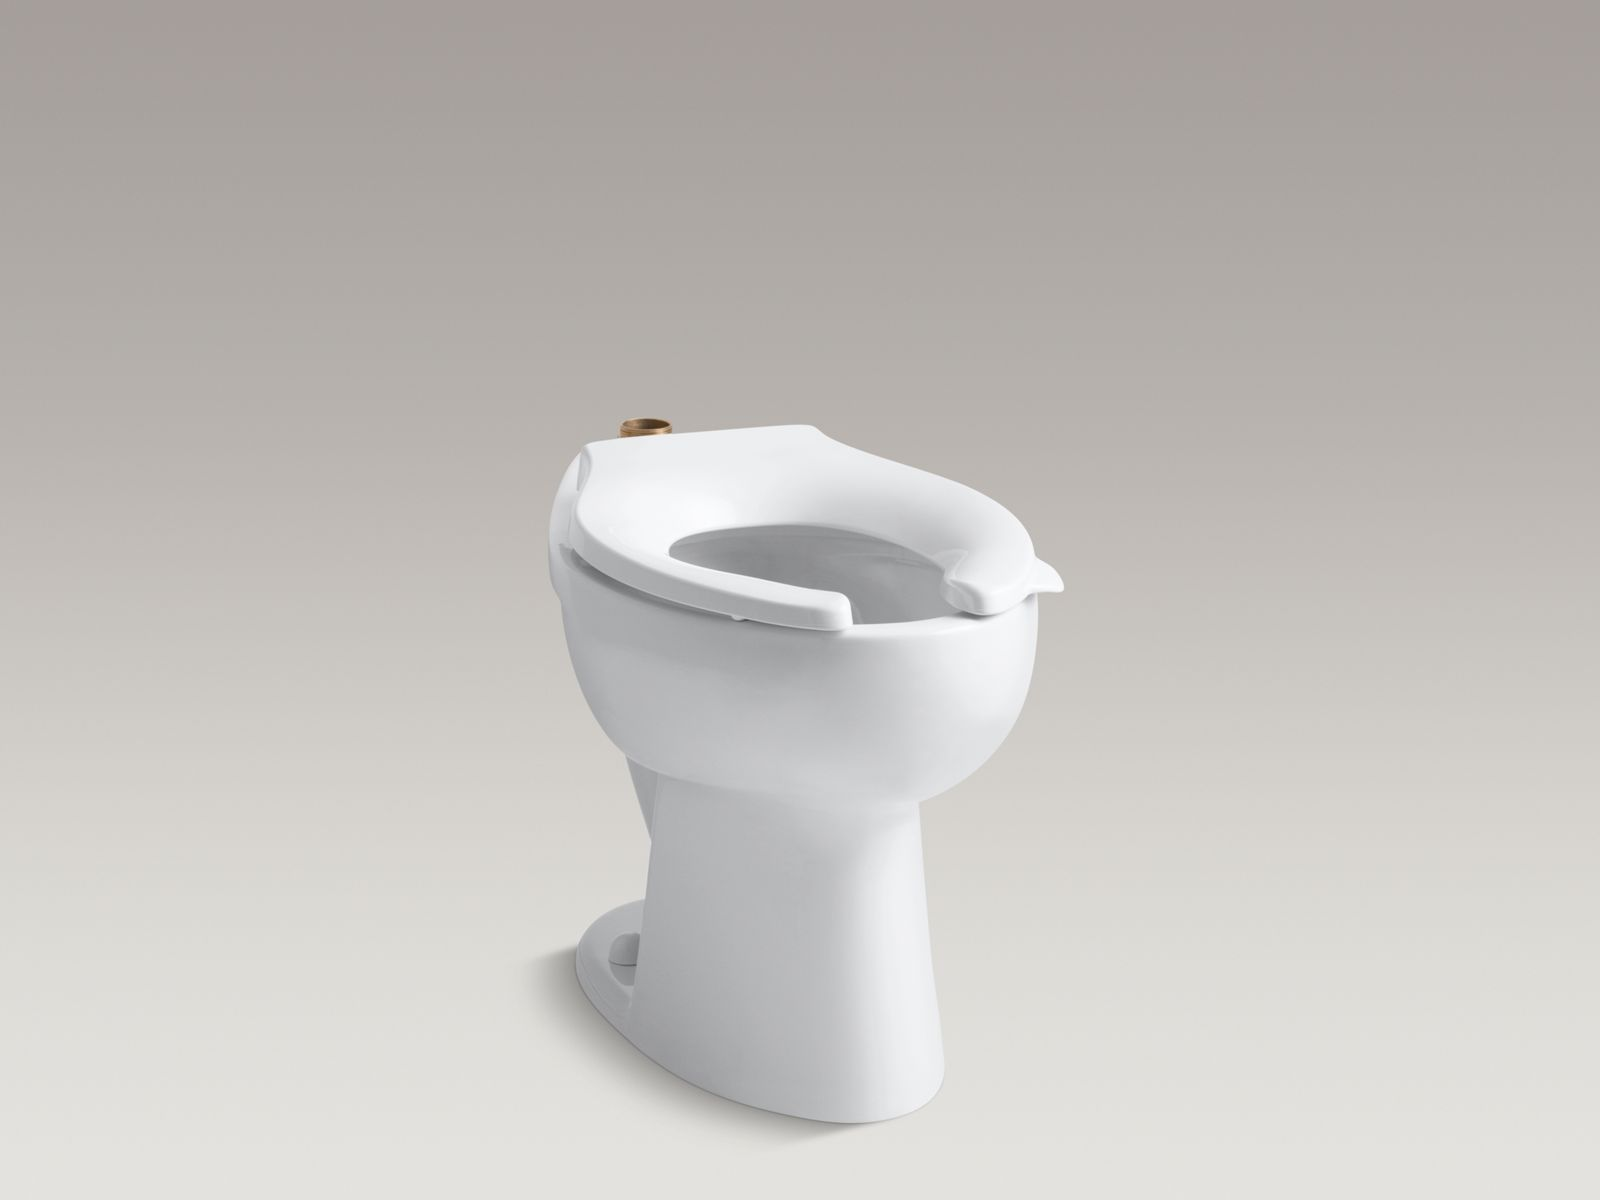 Shown with Stronghold® toilet seat K-4731-C-0, not included.